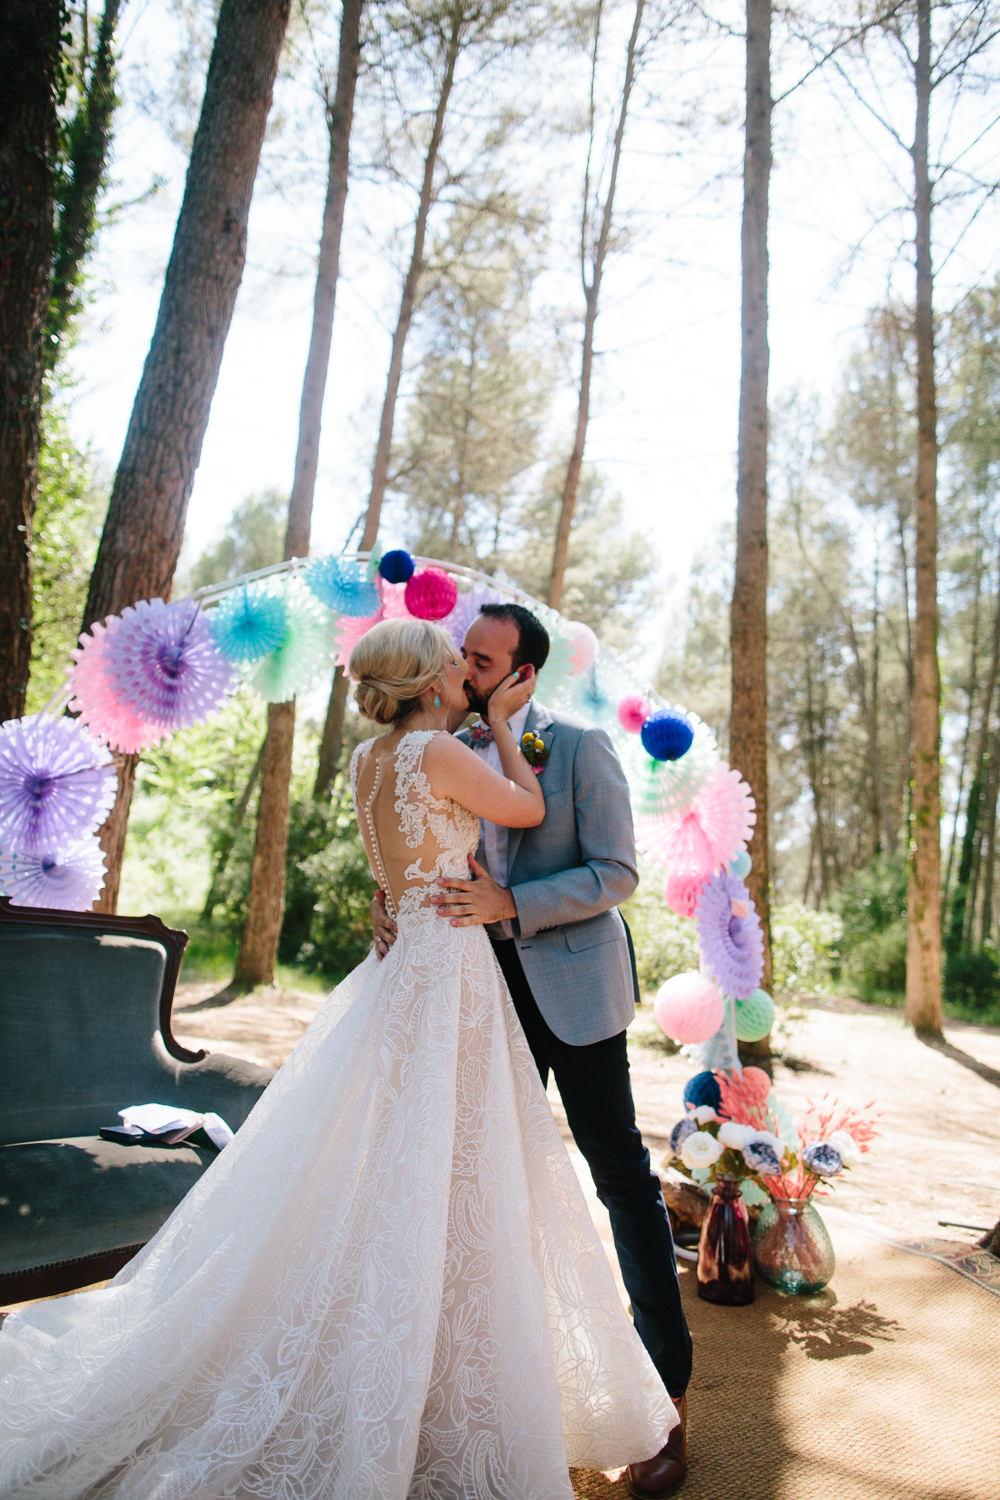 Bride Bridal Lace Strappy Sleeveless Embellished Dress Gown Mismatched Bow Tie Groom Bright Coloured Pin Wheel Paper Lantern Arch Forest Spain Destination Wedding Dan Hough Photography